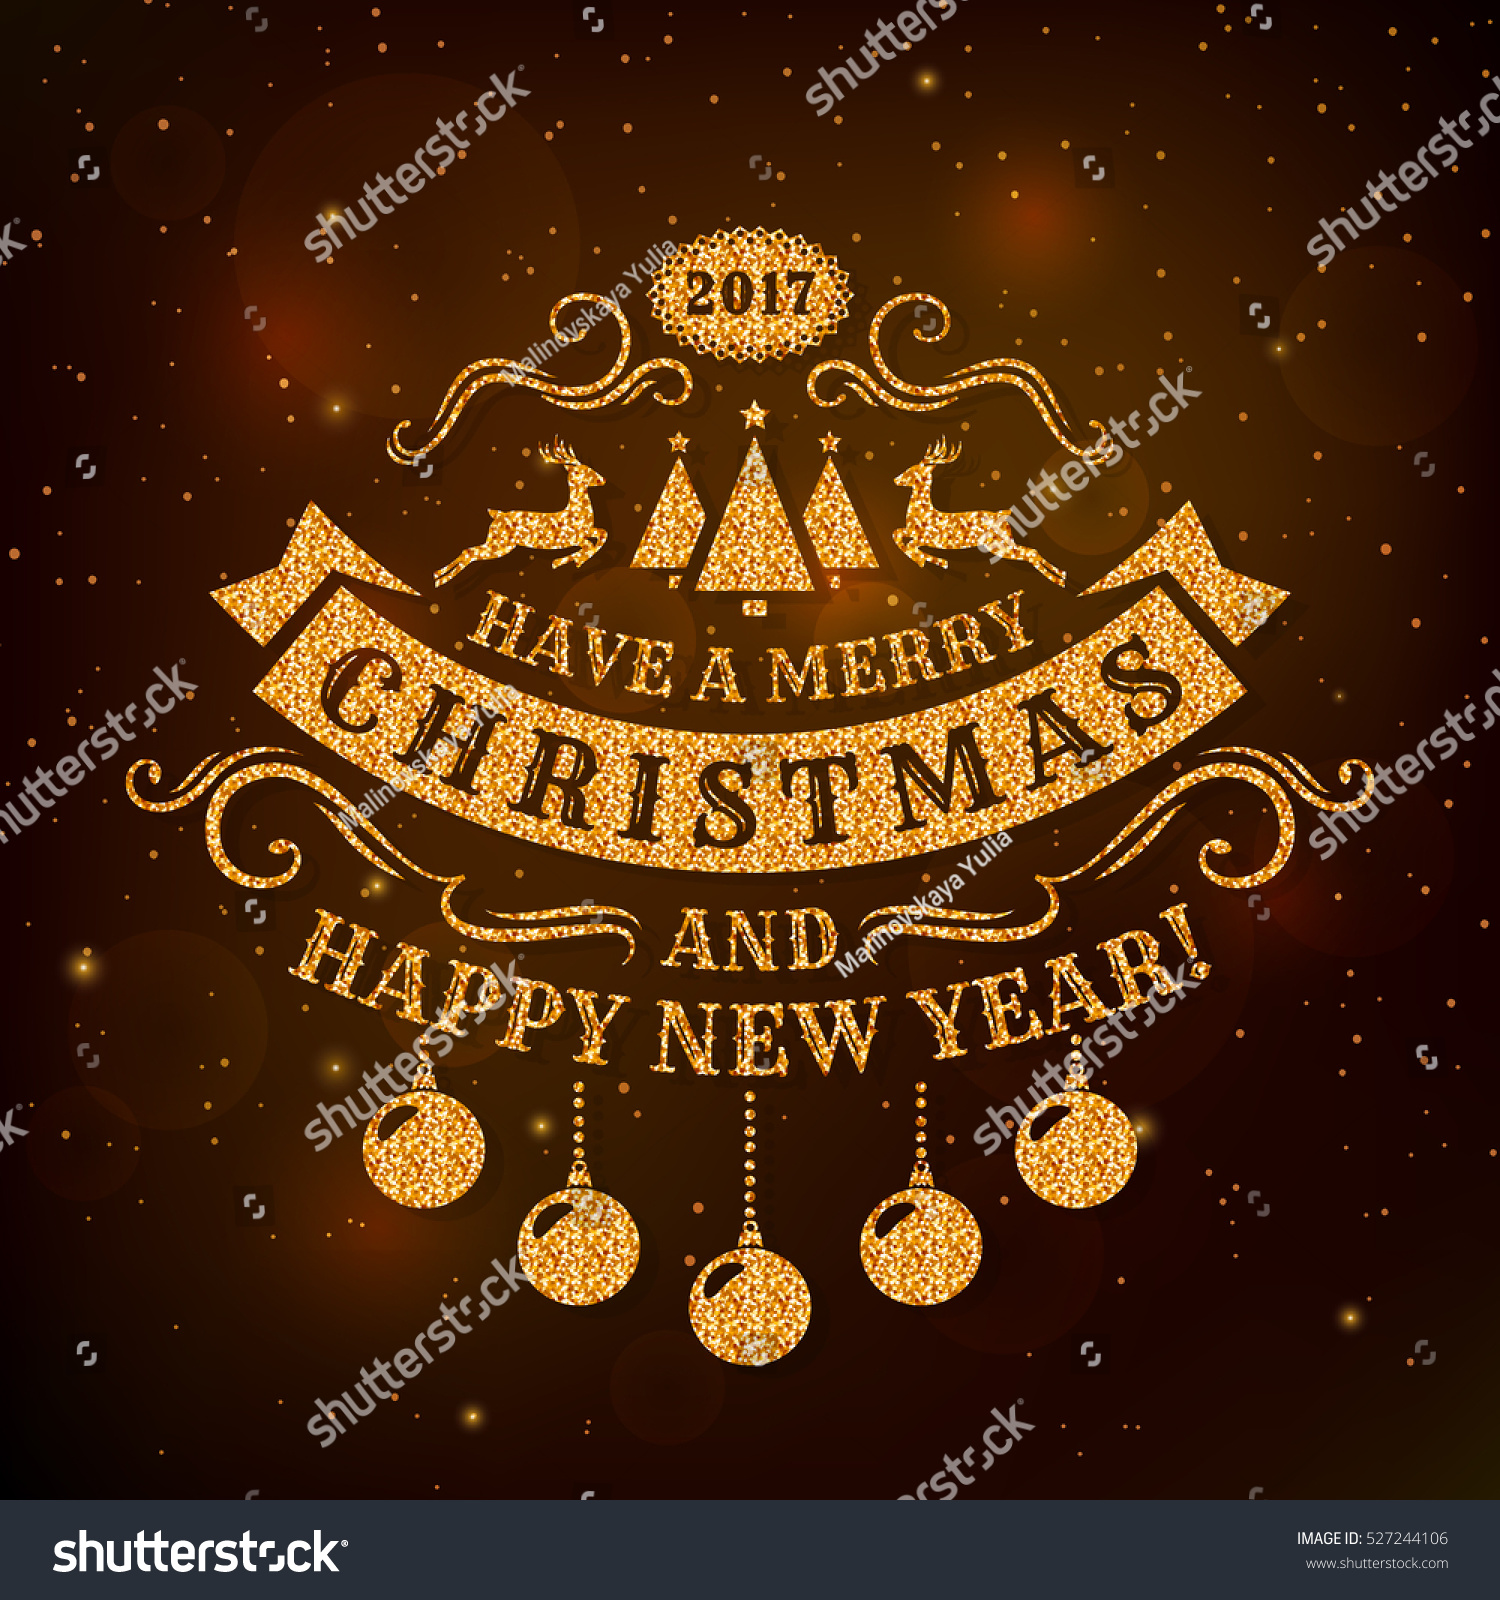 Pics photos merry christmas argyle twitter backgrounds - Merry Christmas And Happy New Year Greeting Card With Dark Background And Golden Glitter Typography